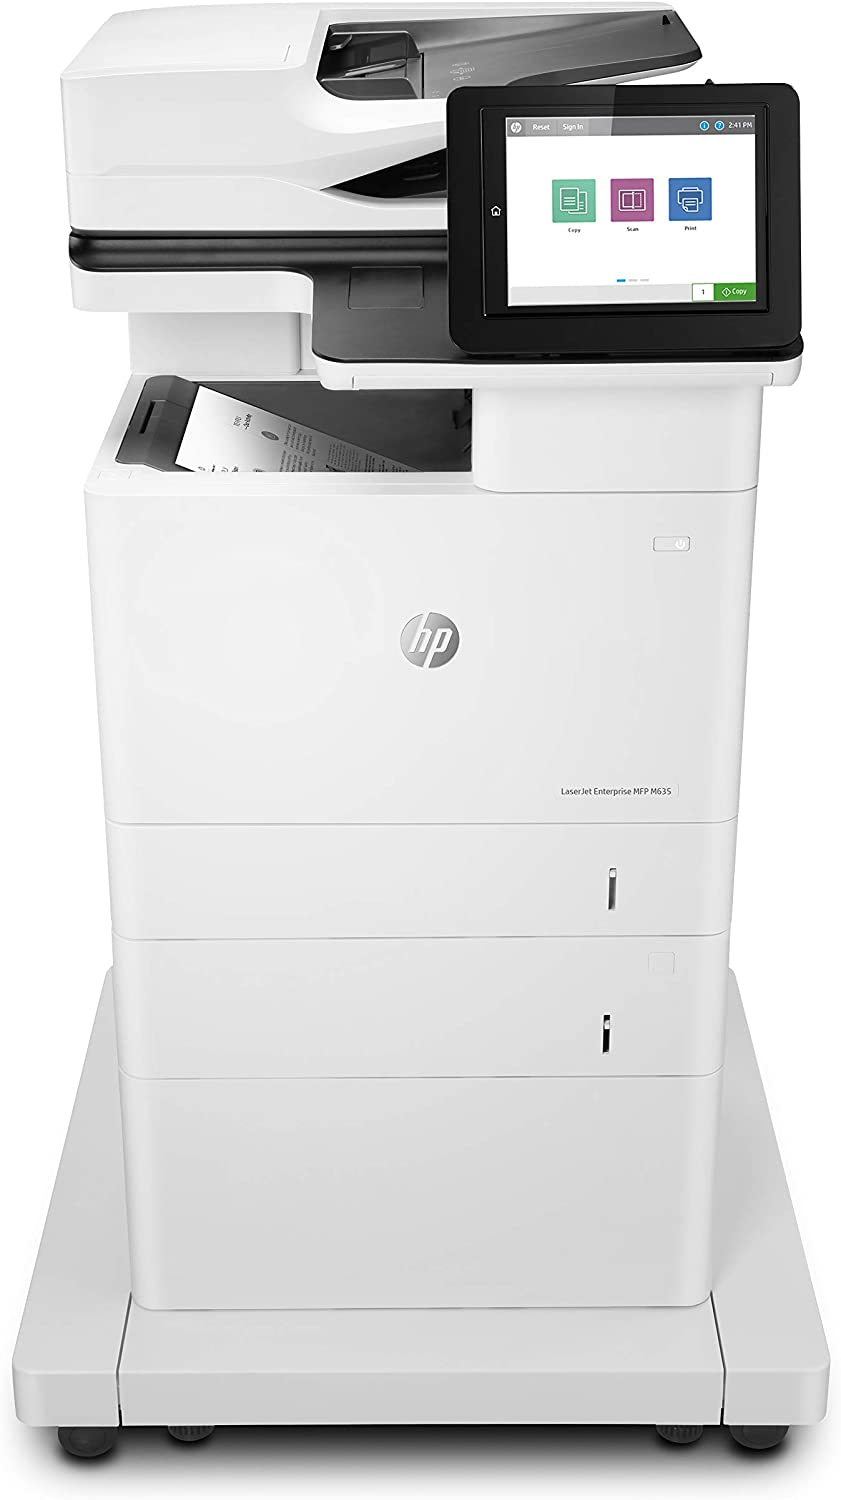 HP Laserjet Enterprise MFP M635fht Monochrome Multifunction Printer with Extra Paper Tray and Wheeled Stand (7PS98A), White (7PS98A#BGJ)